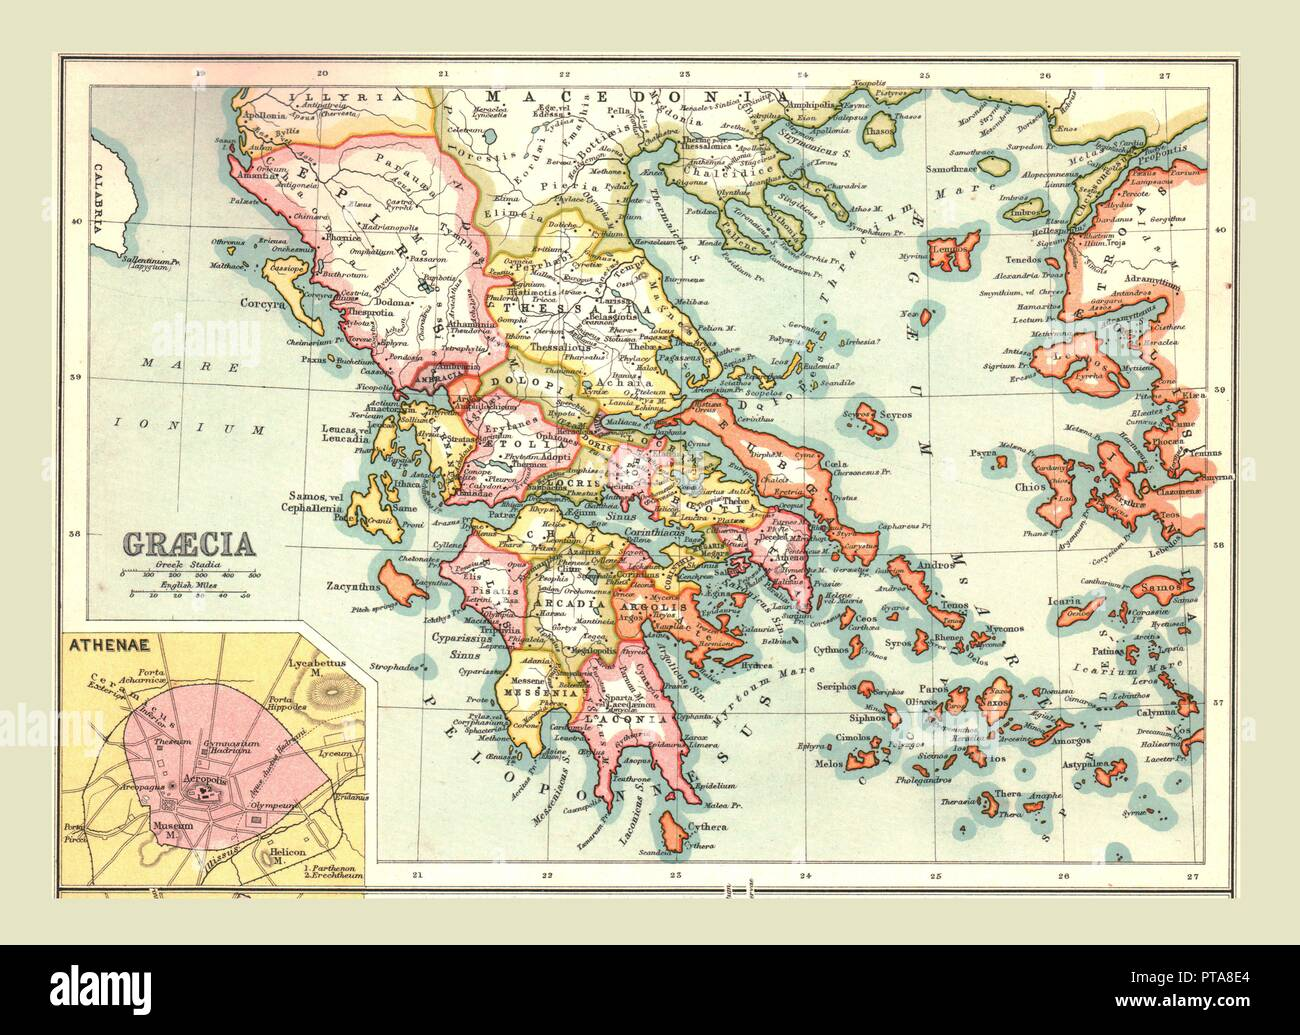 Map Of Graecia 1902 The Provinces Of Ancient Greece With